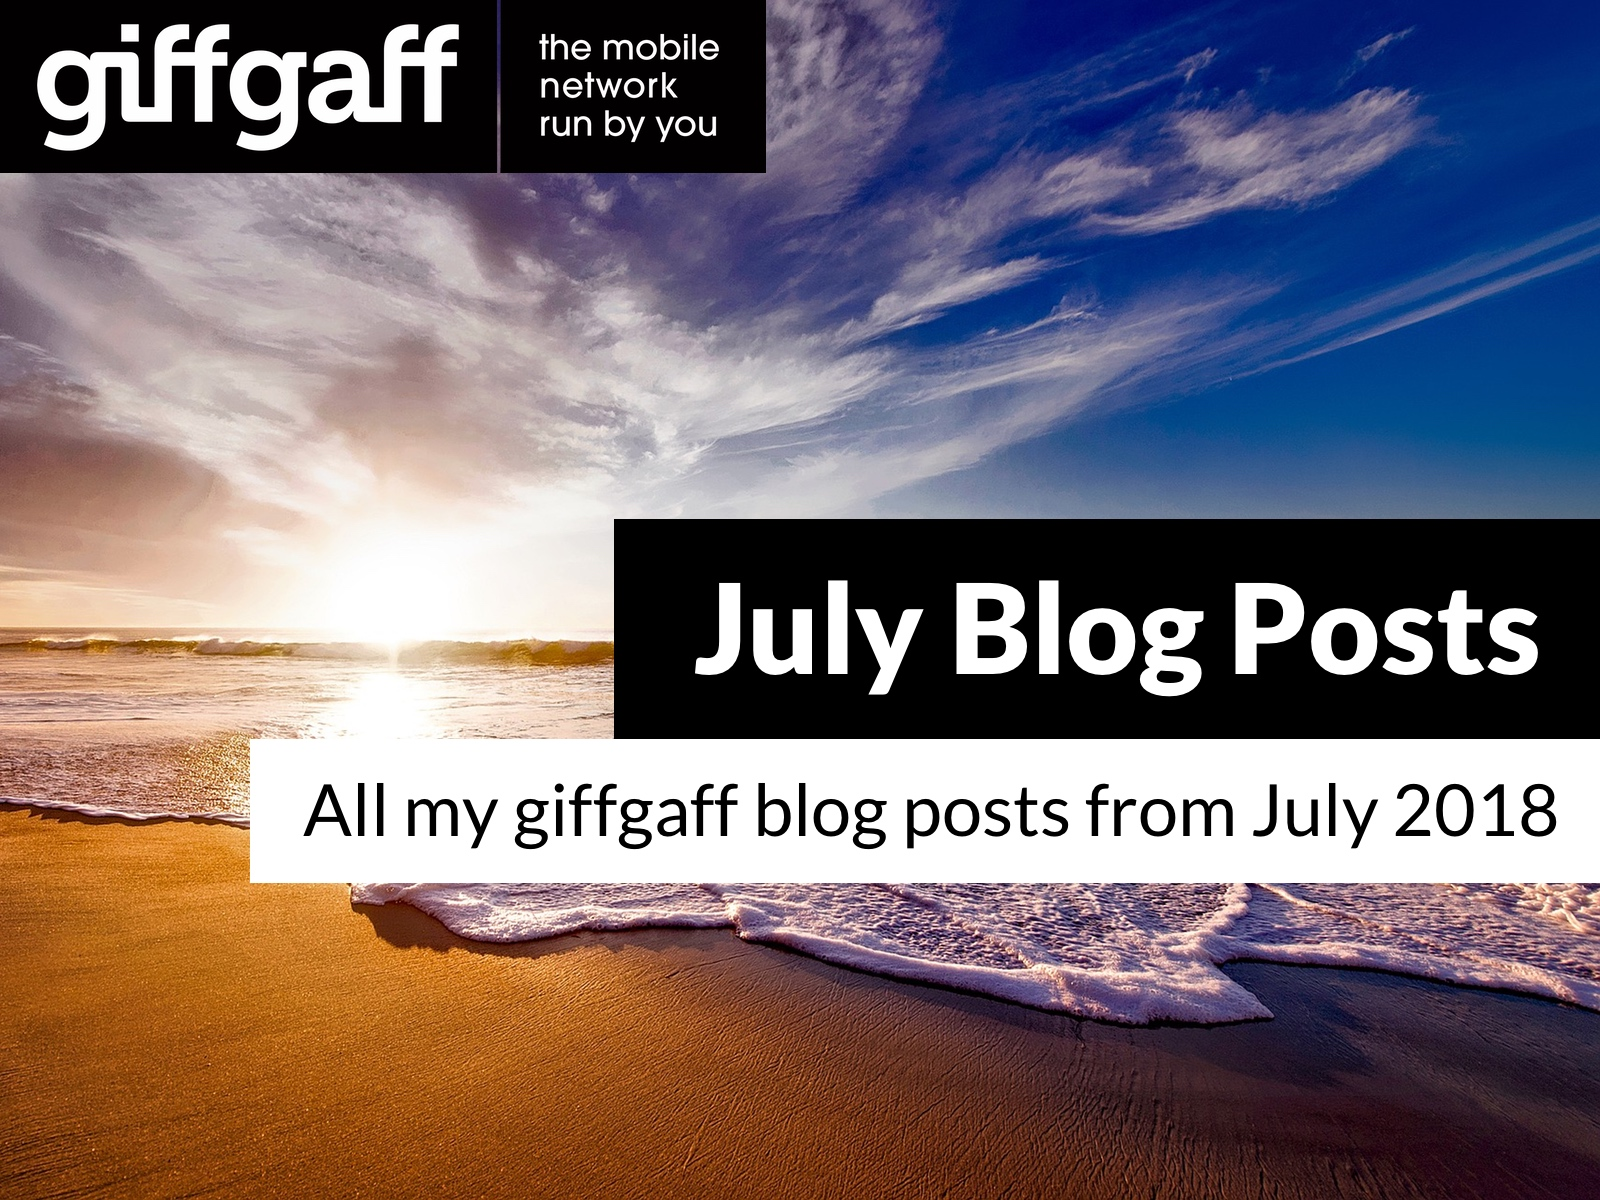 July 2018 Blog Posts